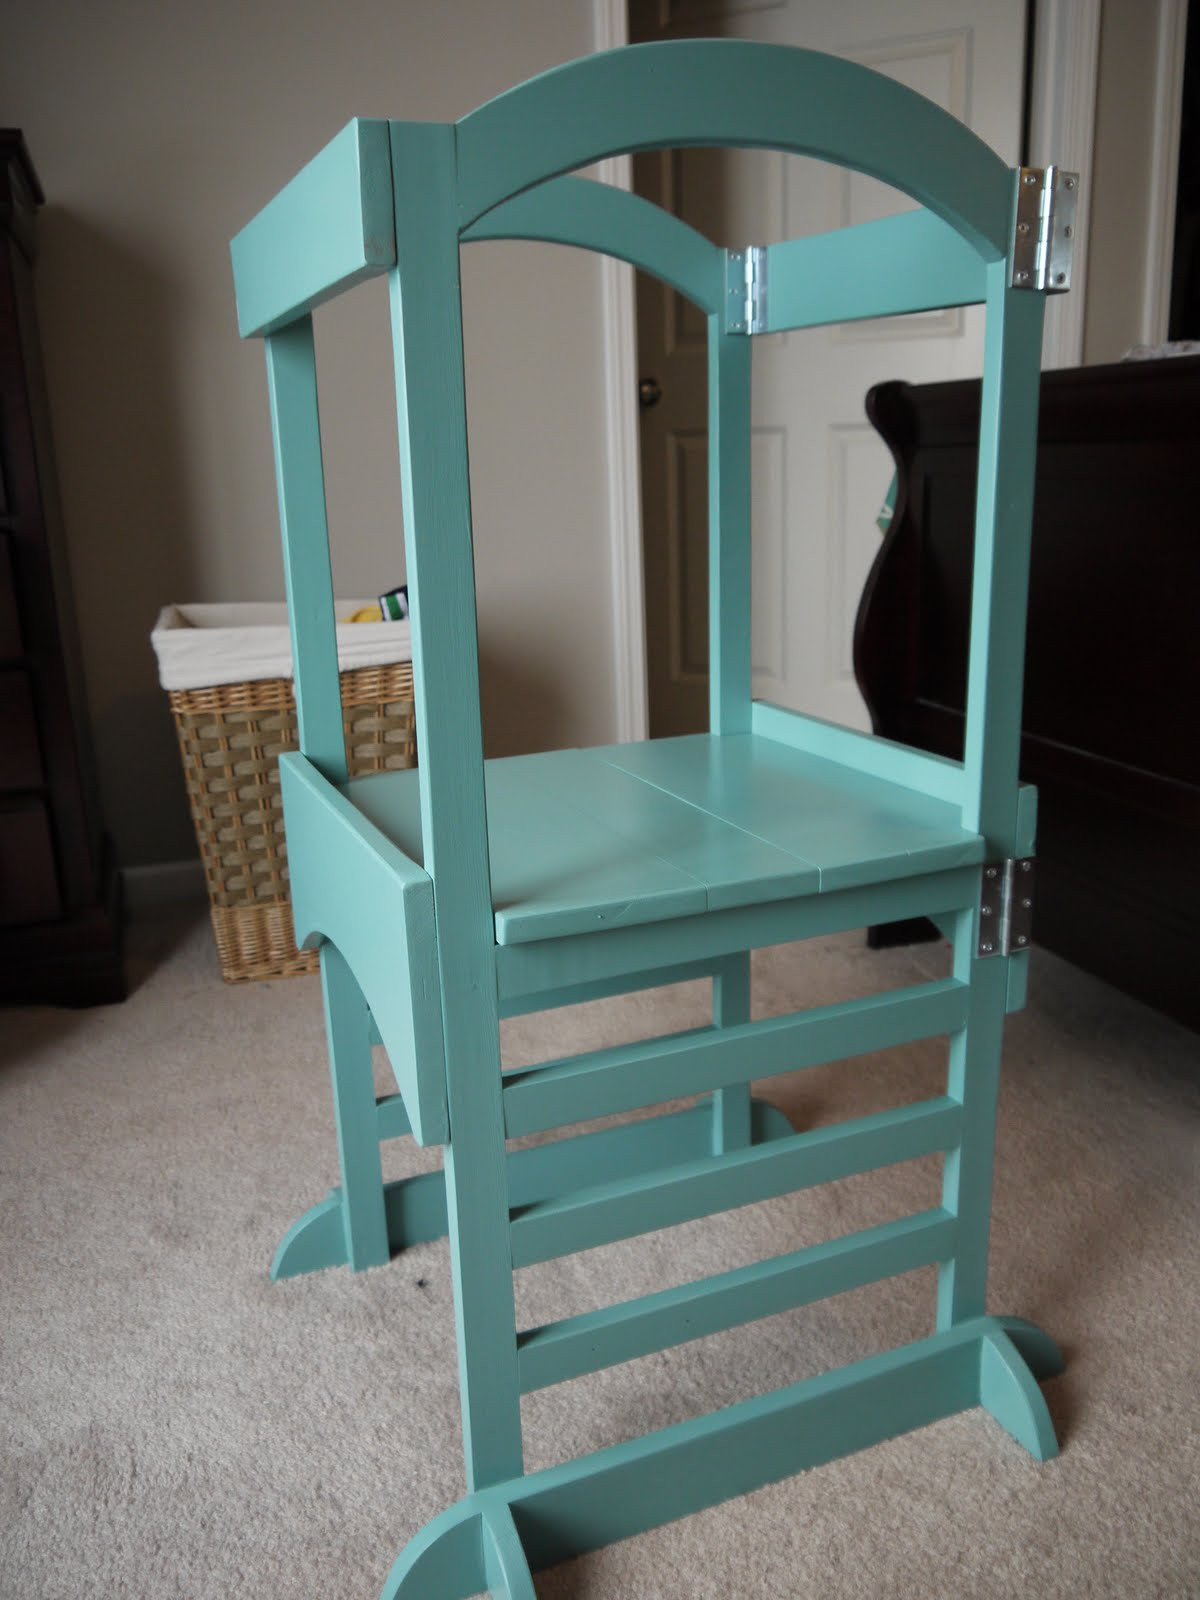 Best ideas about DIY Project Plans . Save or Pin Ana White Build a The Little Helper Tower Now.